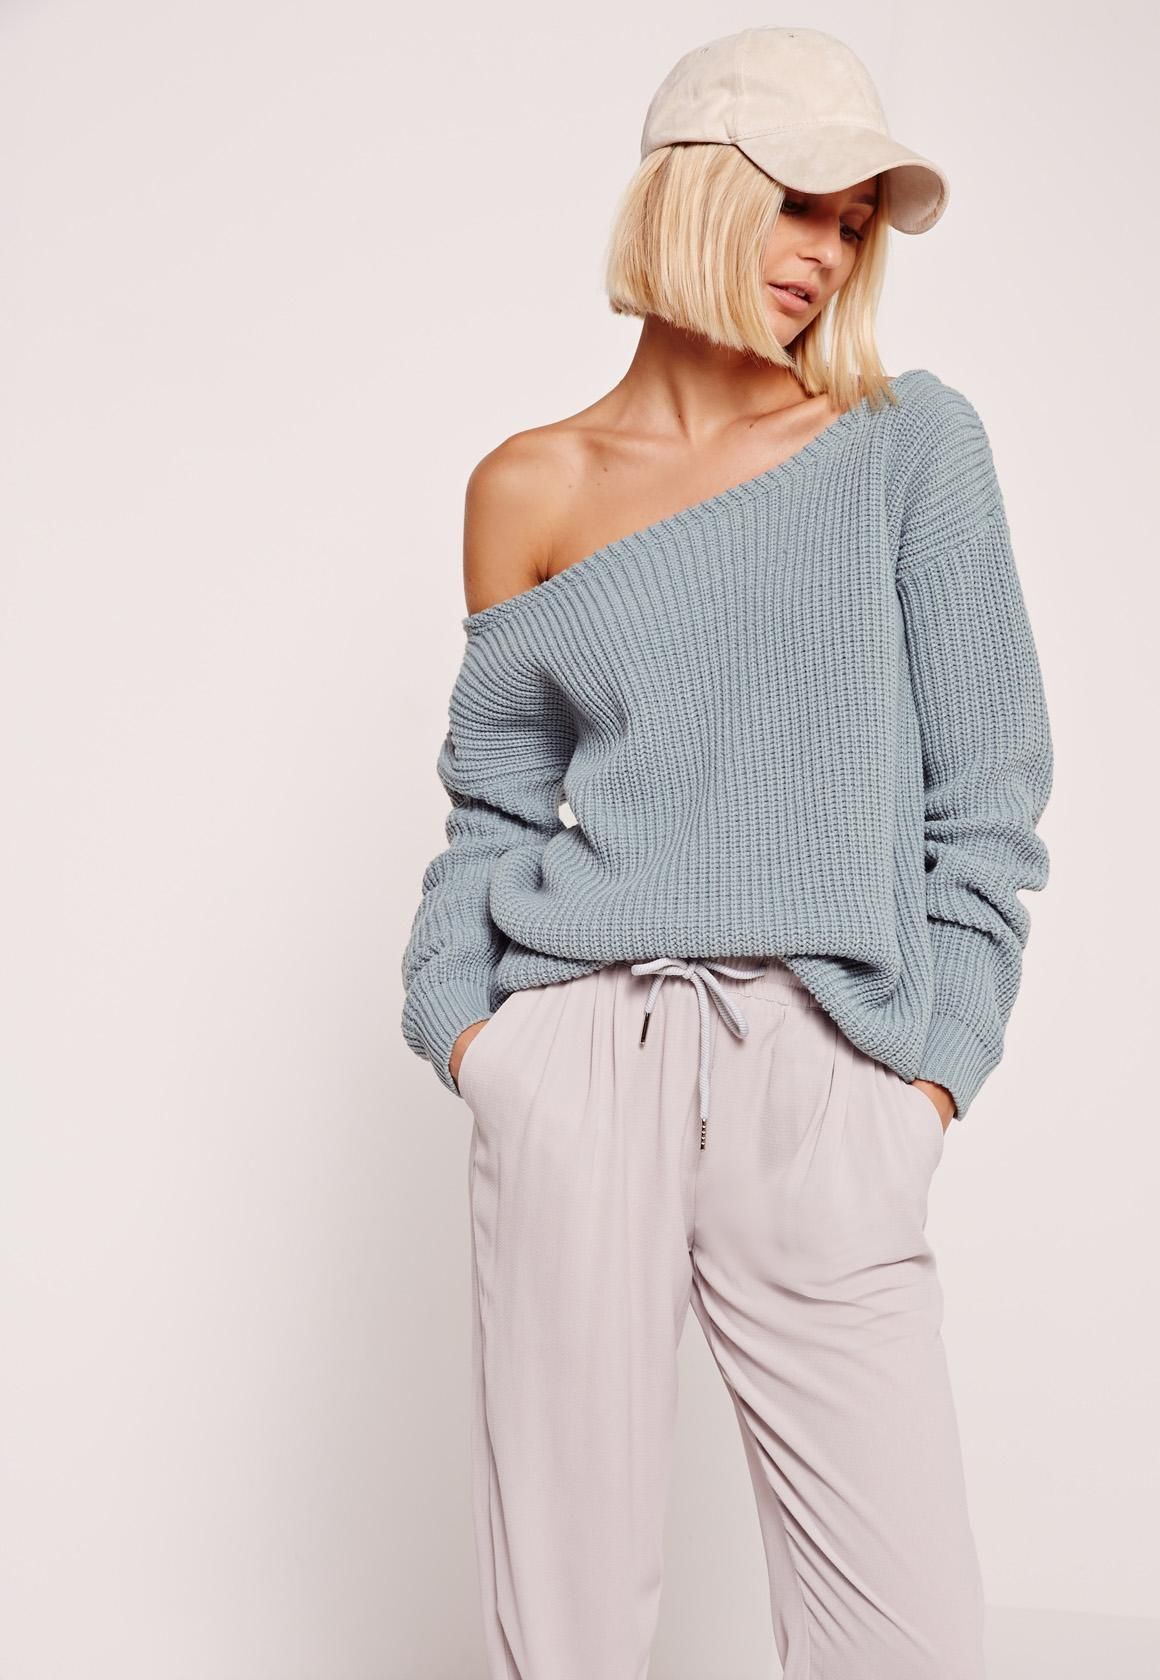 Missguided - Blue Off Shoulder Sweater | wishlist | Pinterest ...